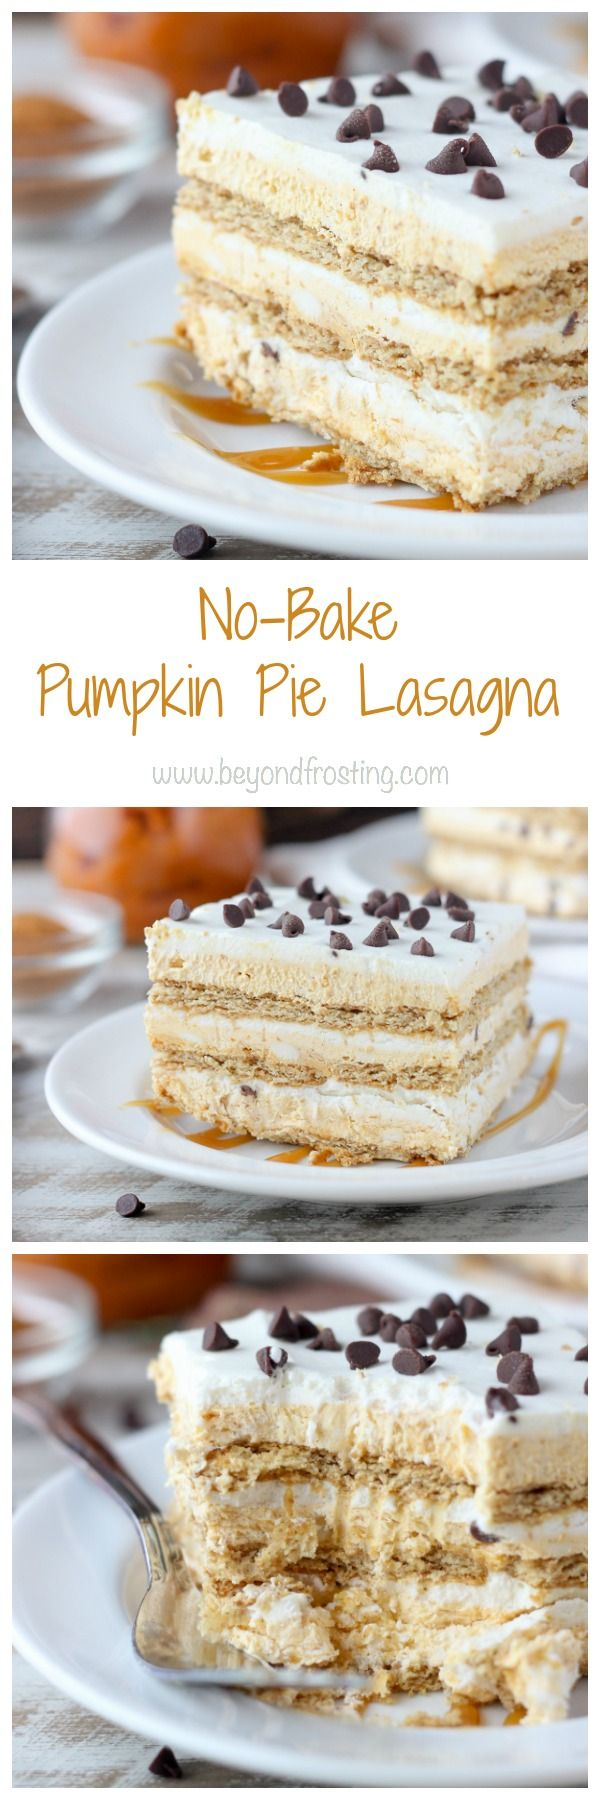 If you're looking for a quick holiday treat, try this no-bake Pumpkin Pie Lasagna. Layers of pumpkin mousse, whipped cream and graham crackers make this icebox cake the perfect fall dessert.